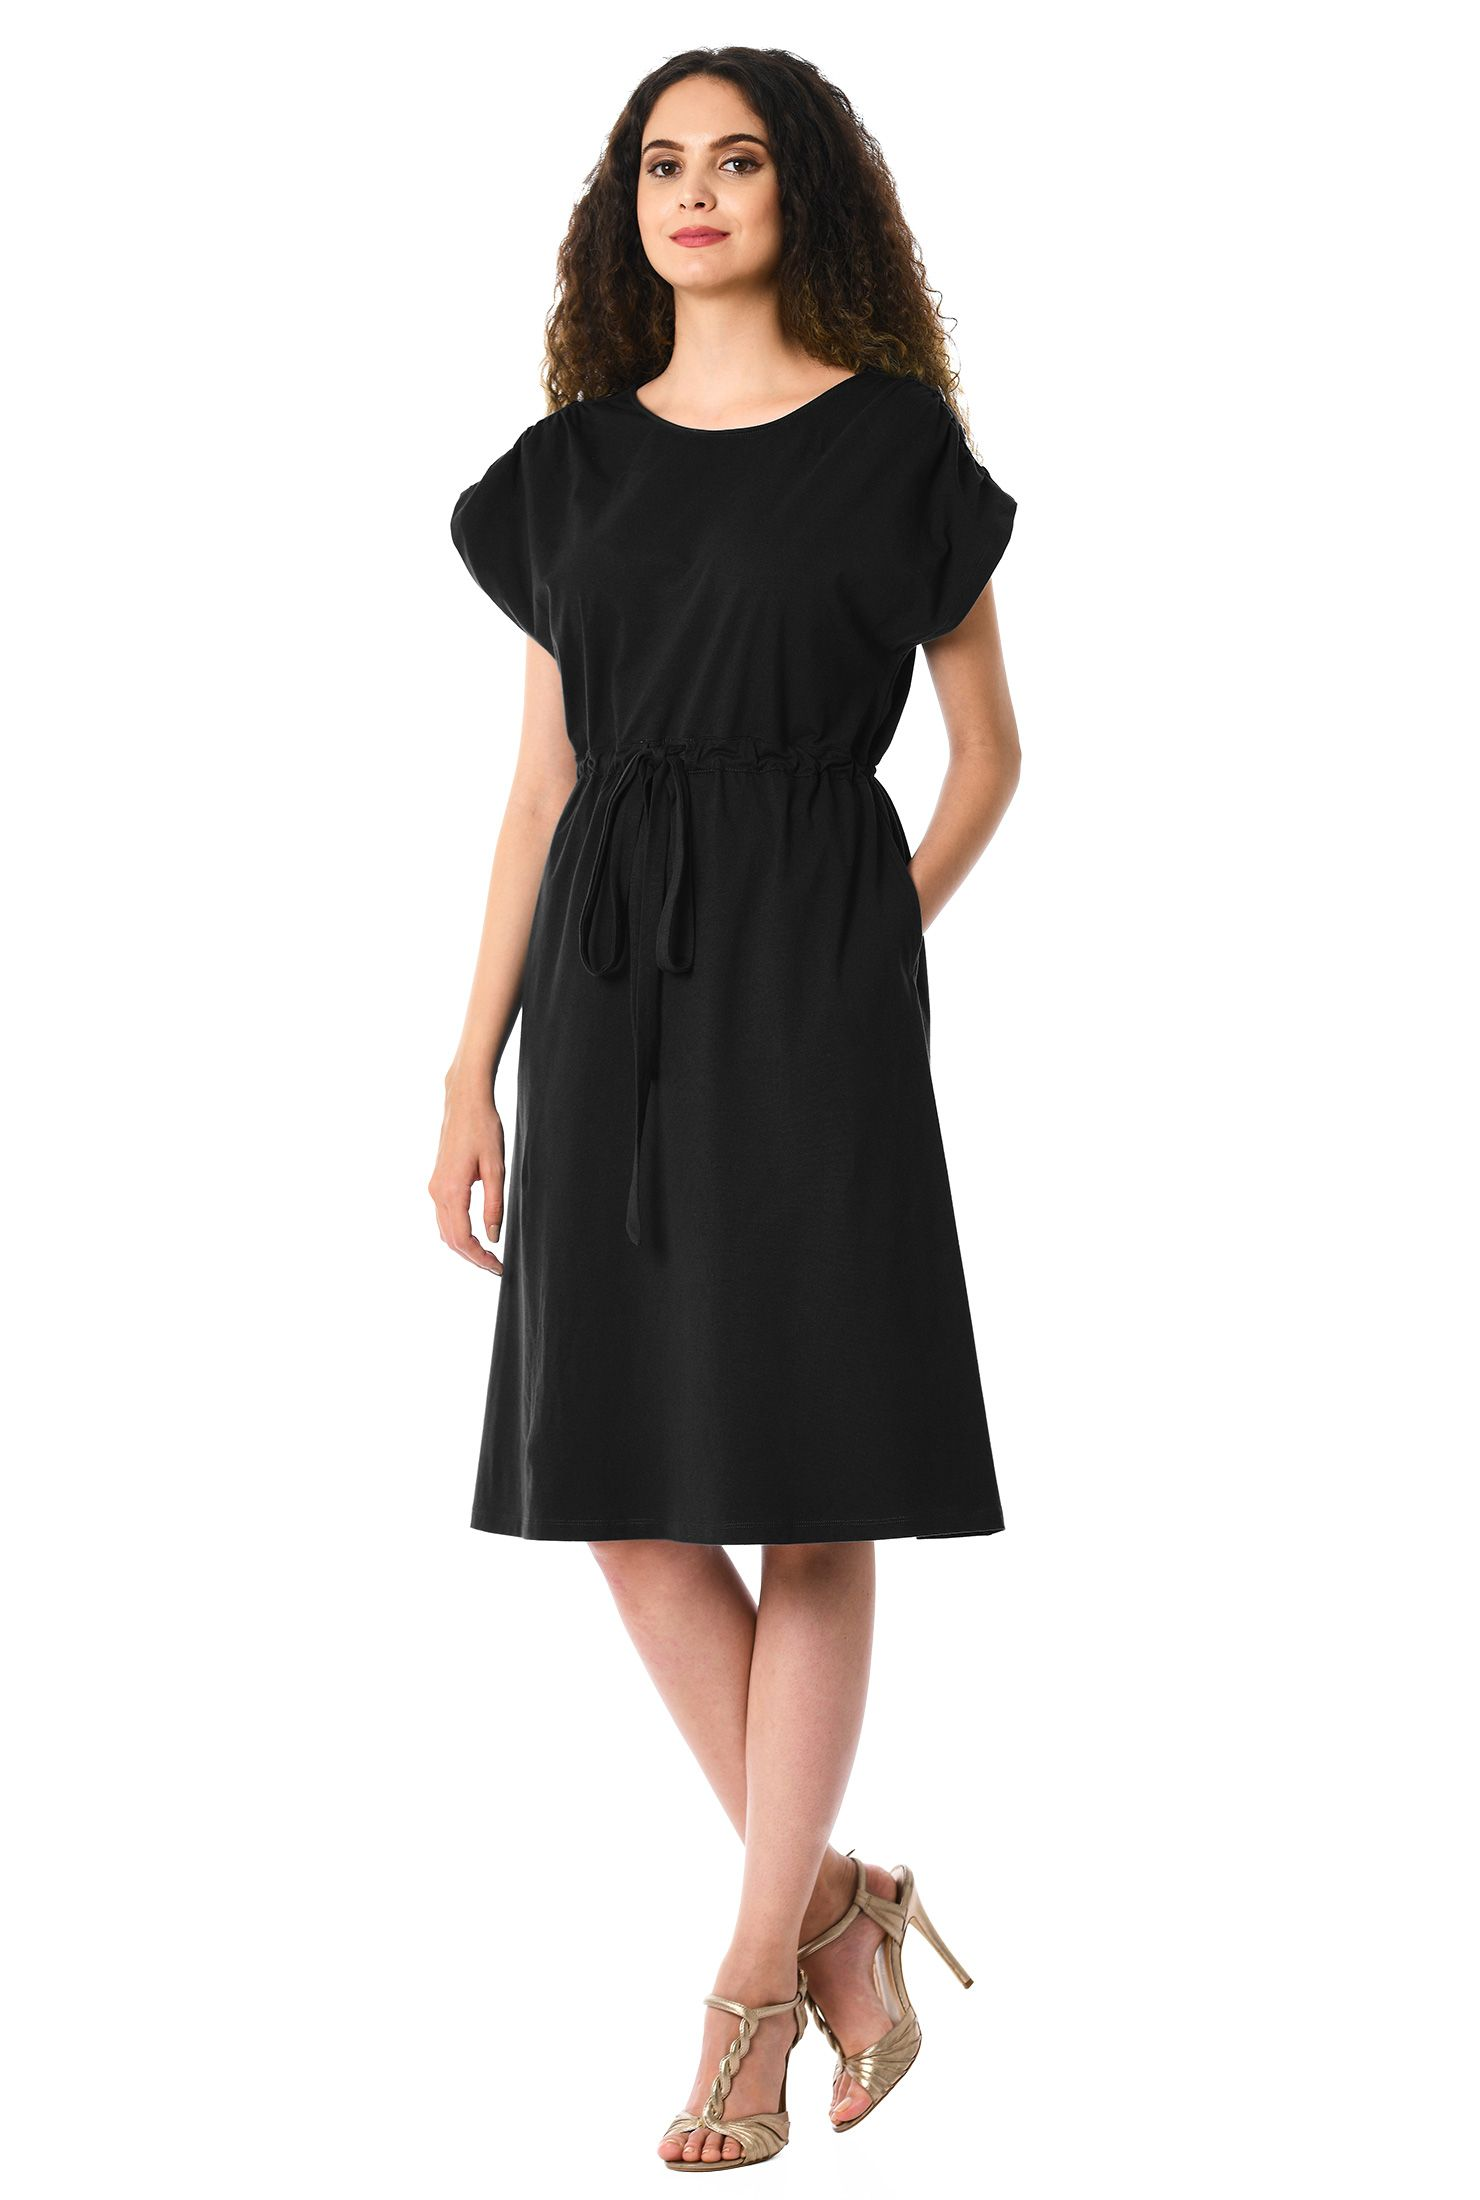 Below knee length dresses black dresses blouson dresses cotton